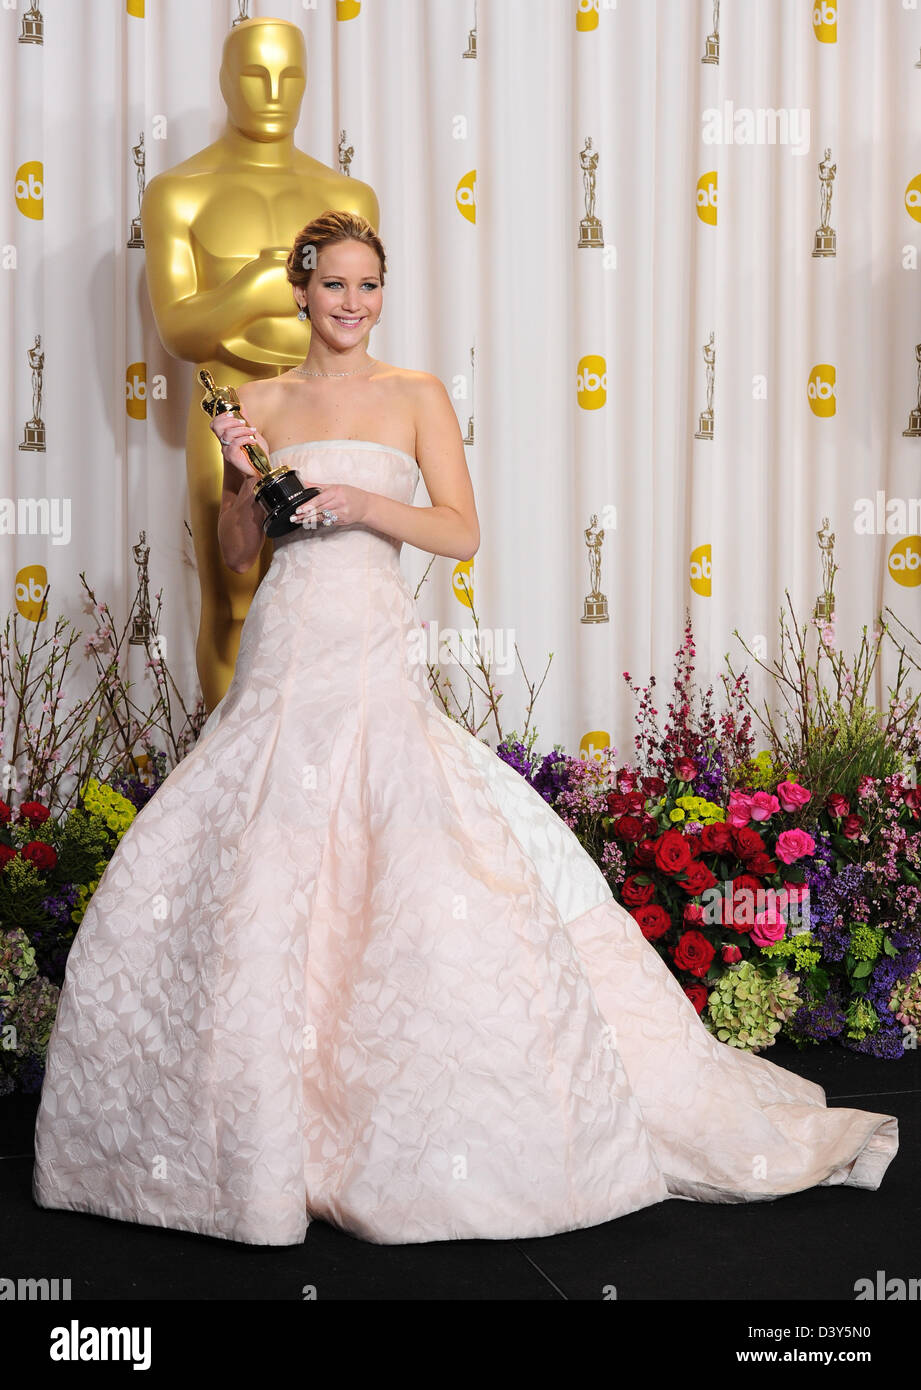 Los Angeles, USA. 24th February 2013. Jennifer Lawrence  in the winners press room at the 85th Annual Academy Awards - Stock Image